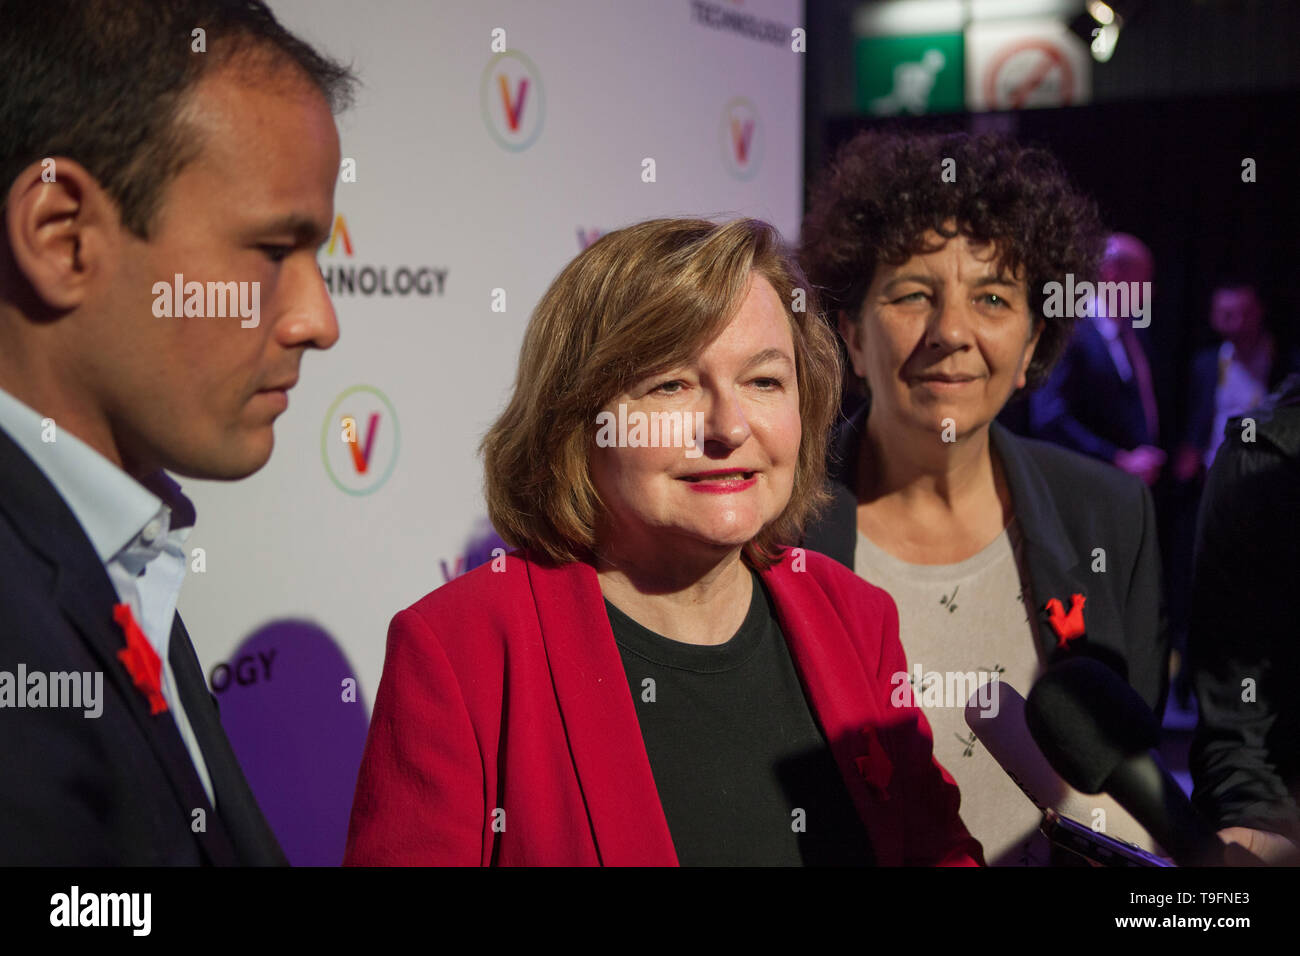 Nathalie Loisseau candidate for the French European election visiting the show Viva Technology in Paris - Stock Image